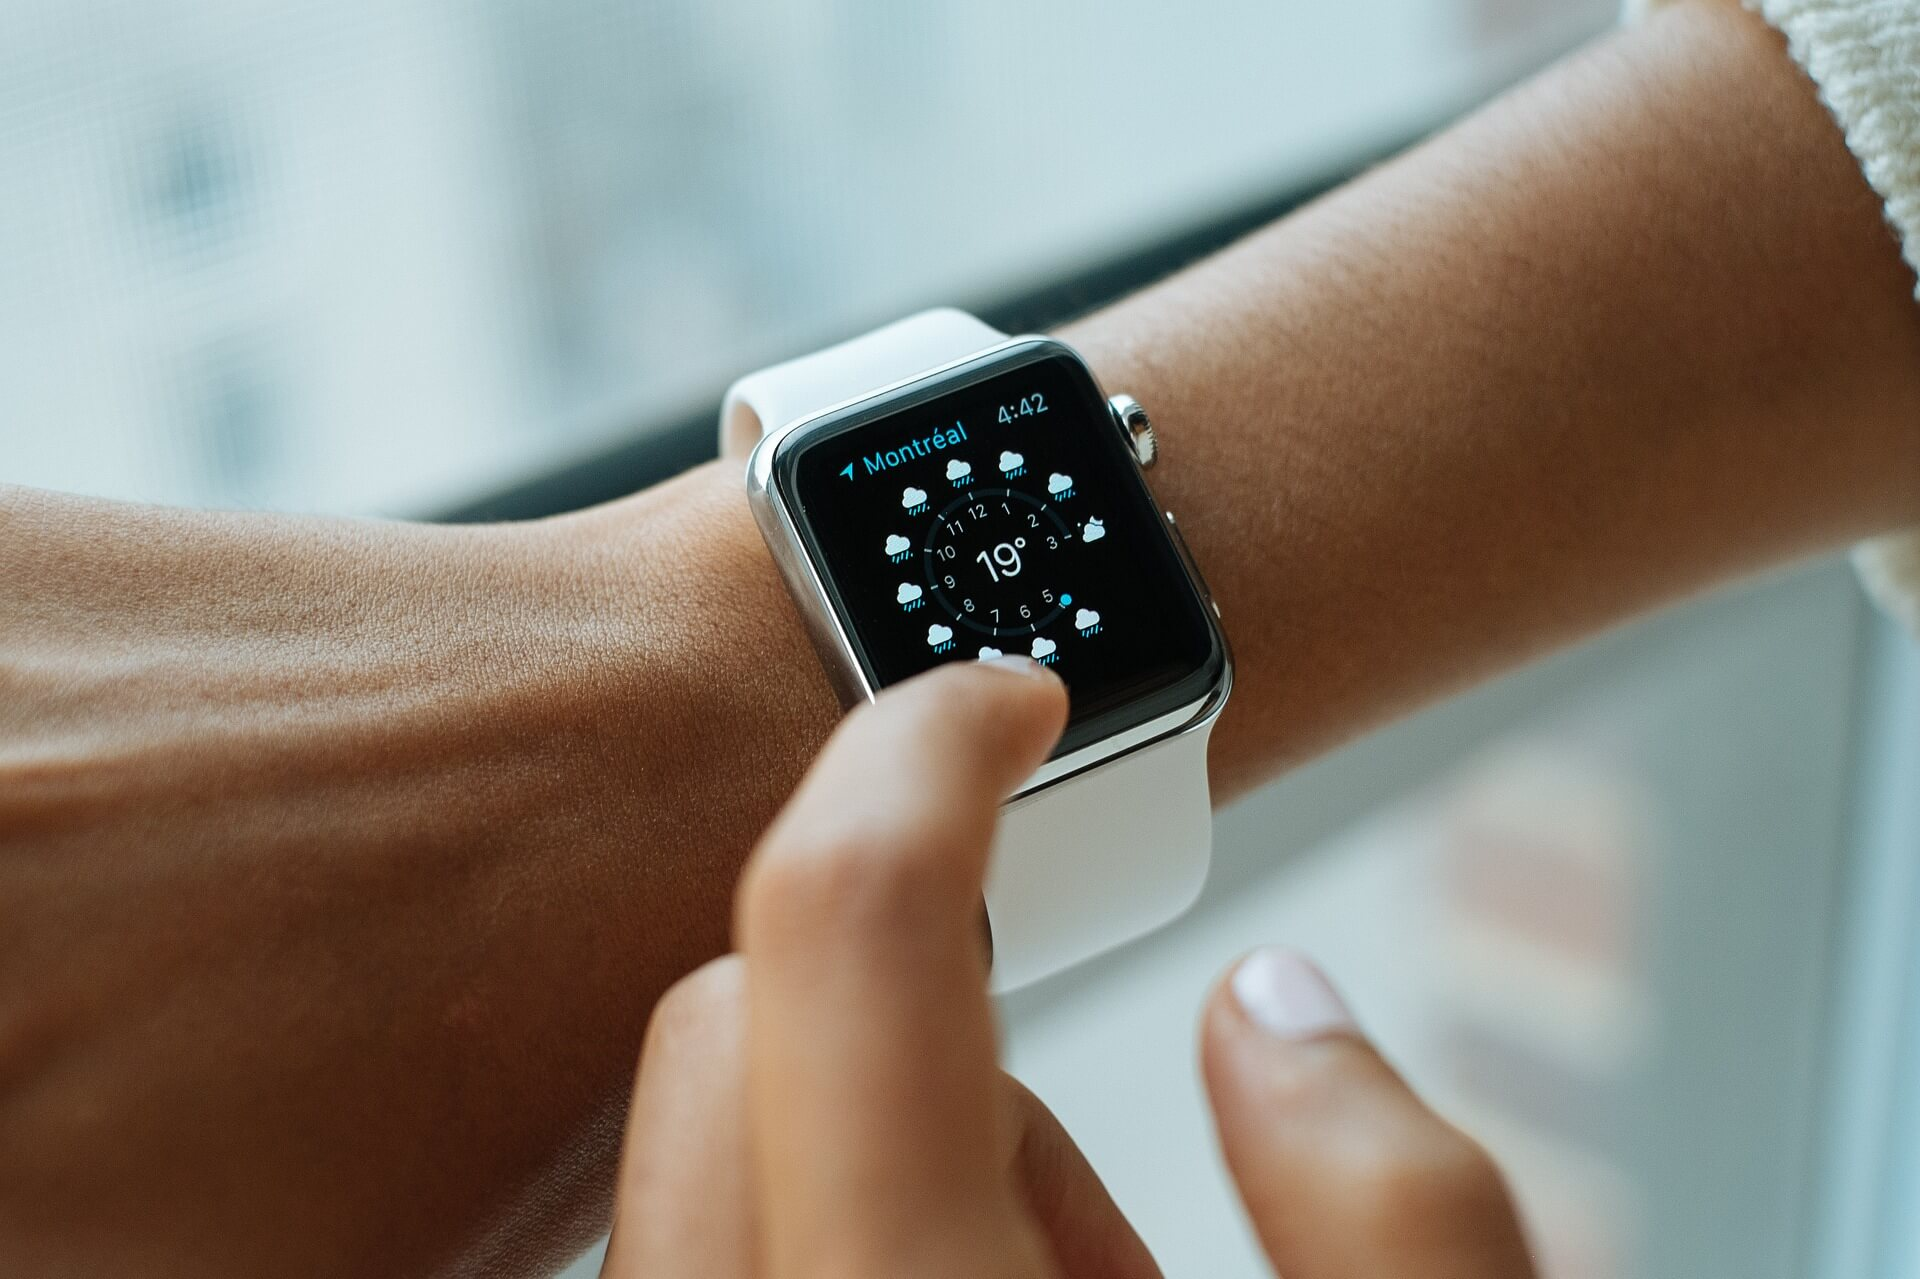 Apple-watch-battery - Akku